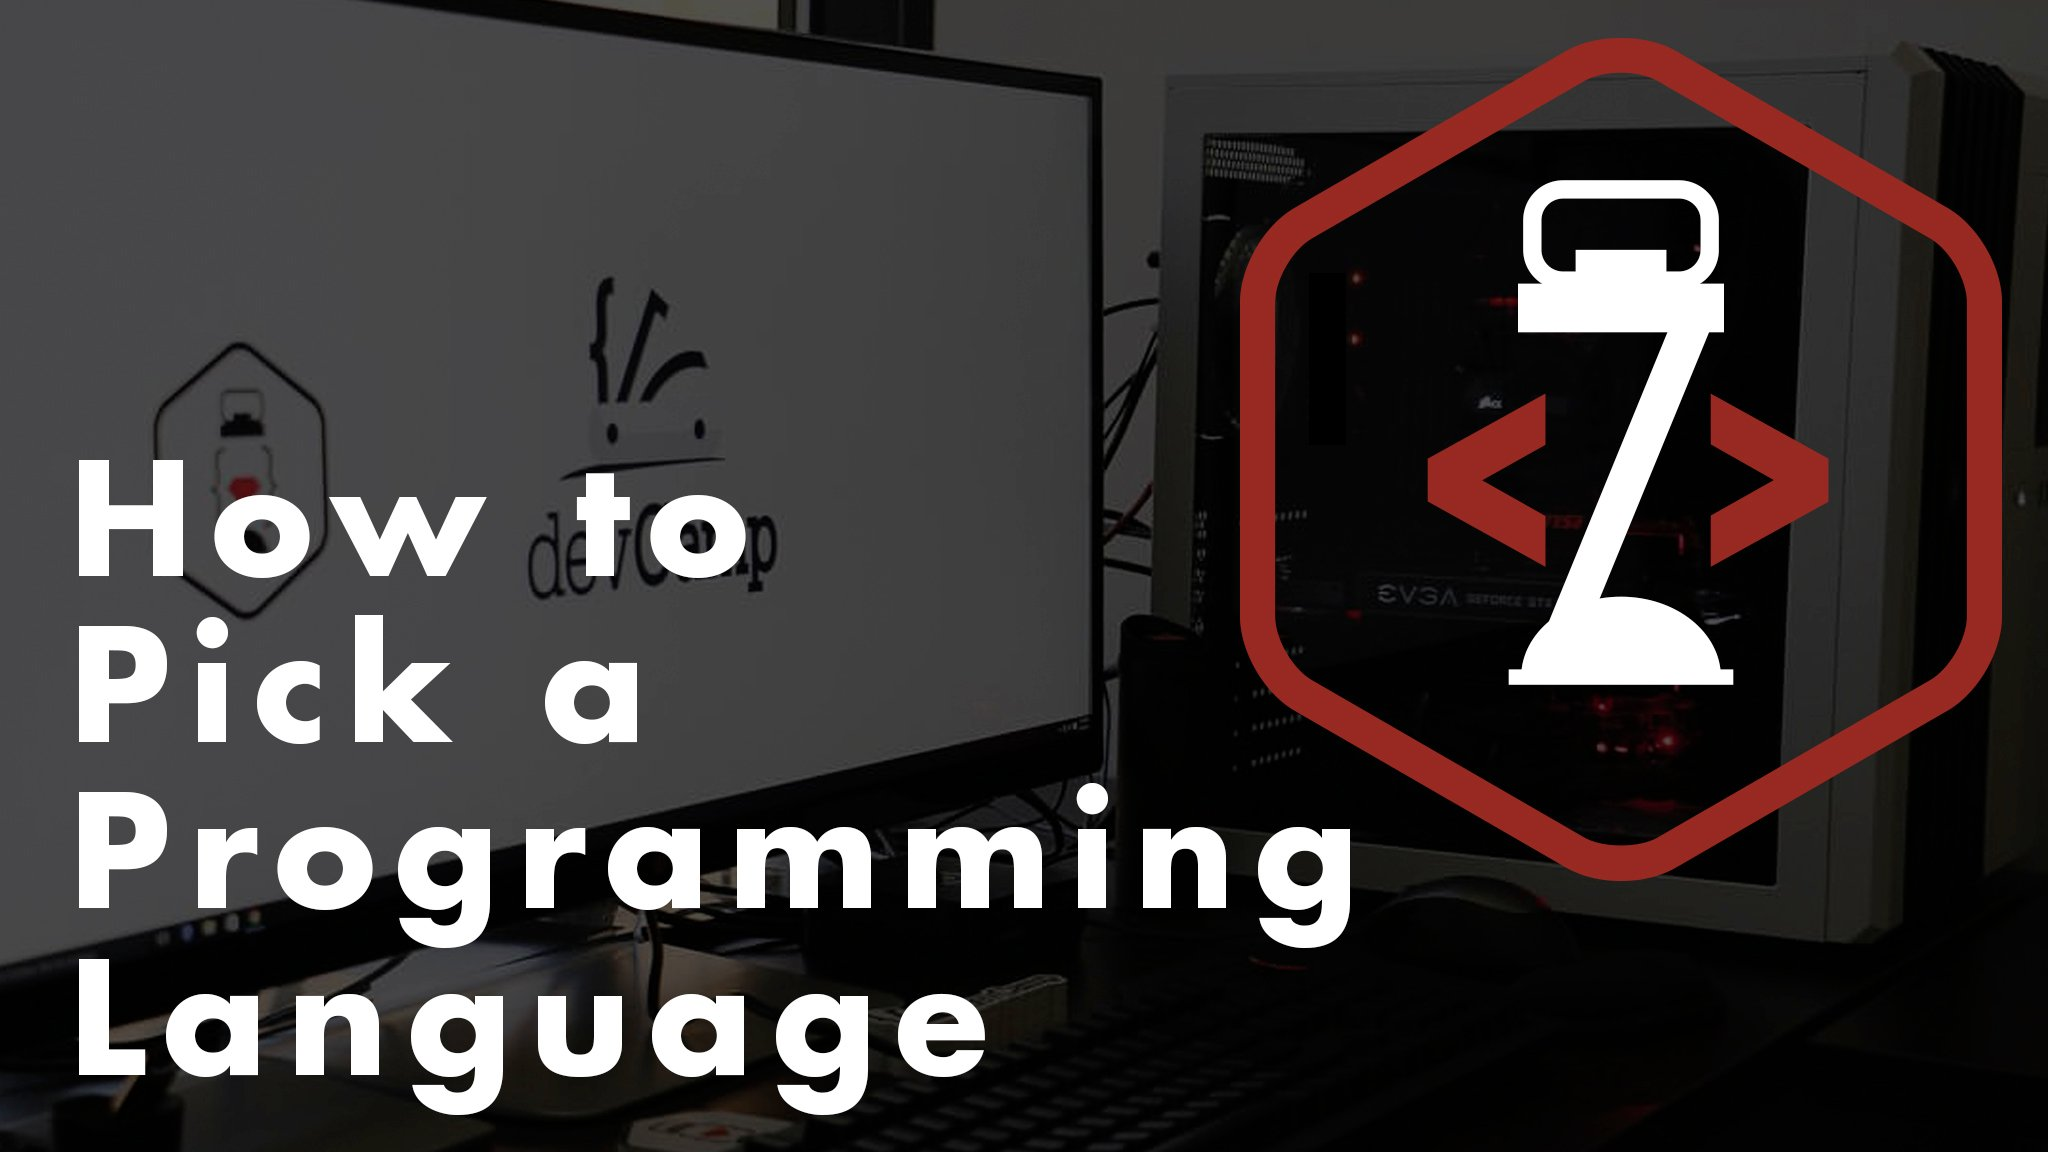 How to Pick a Programming Language